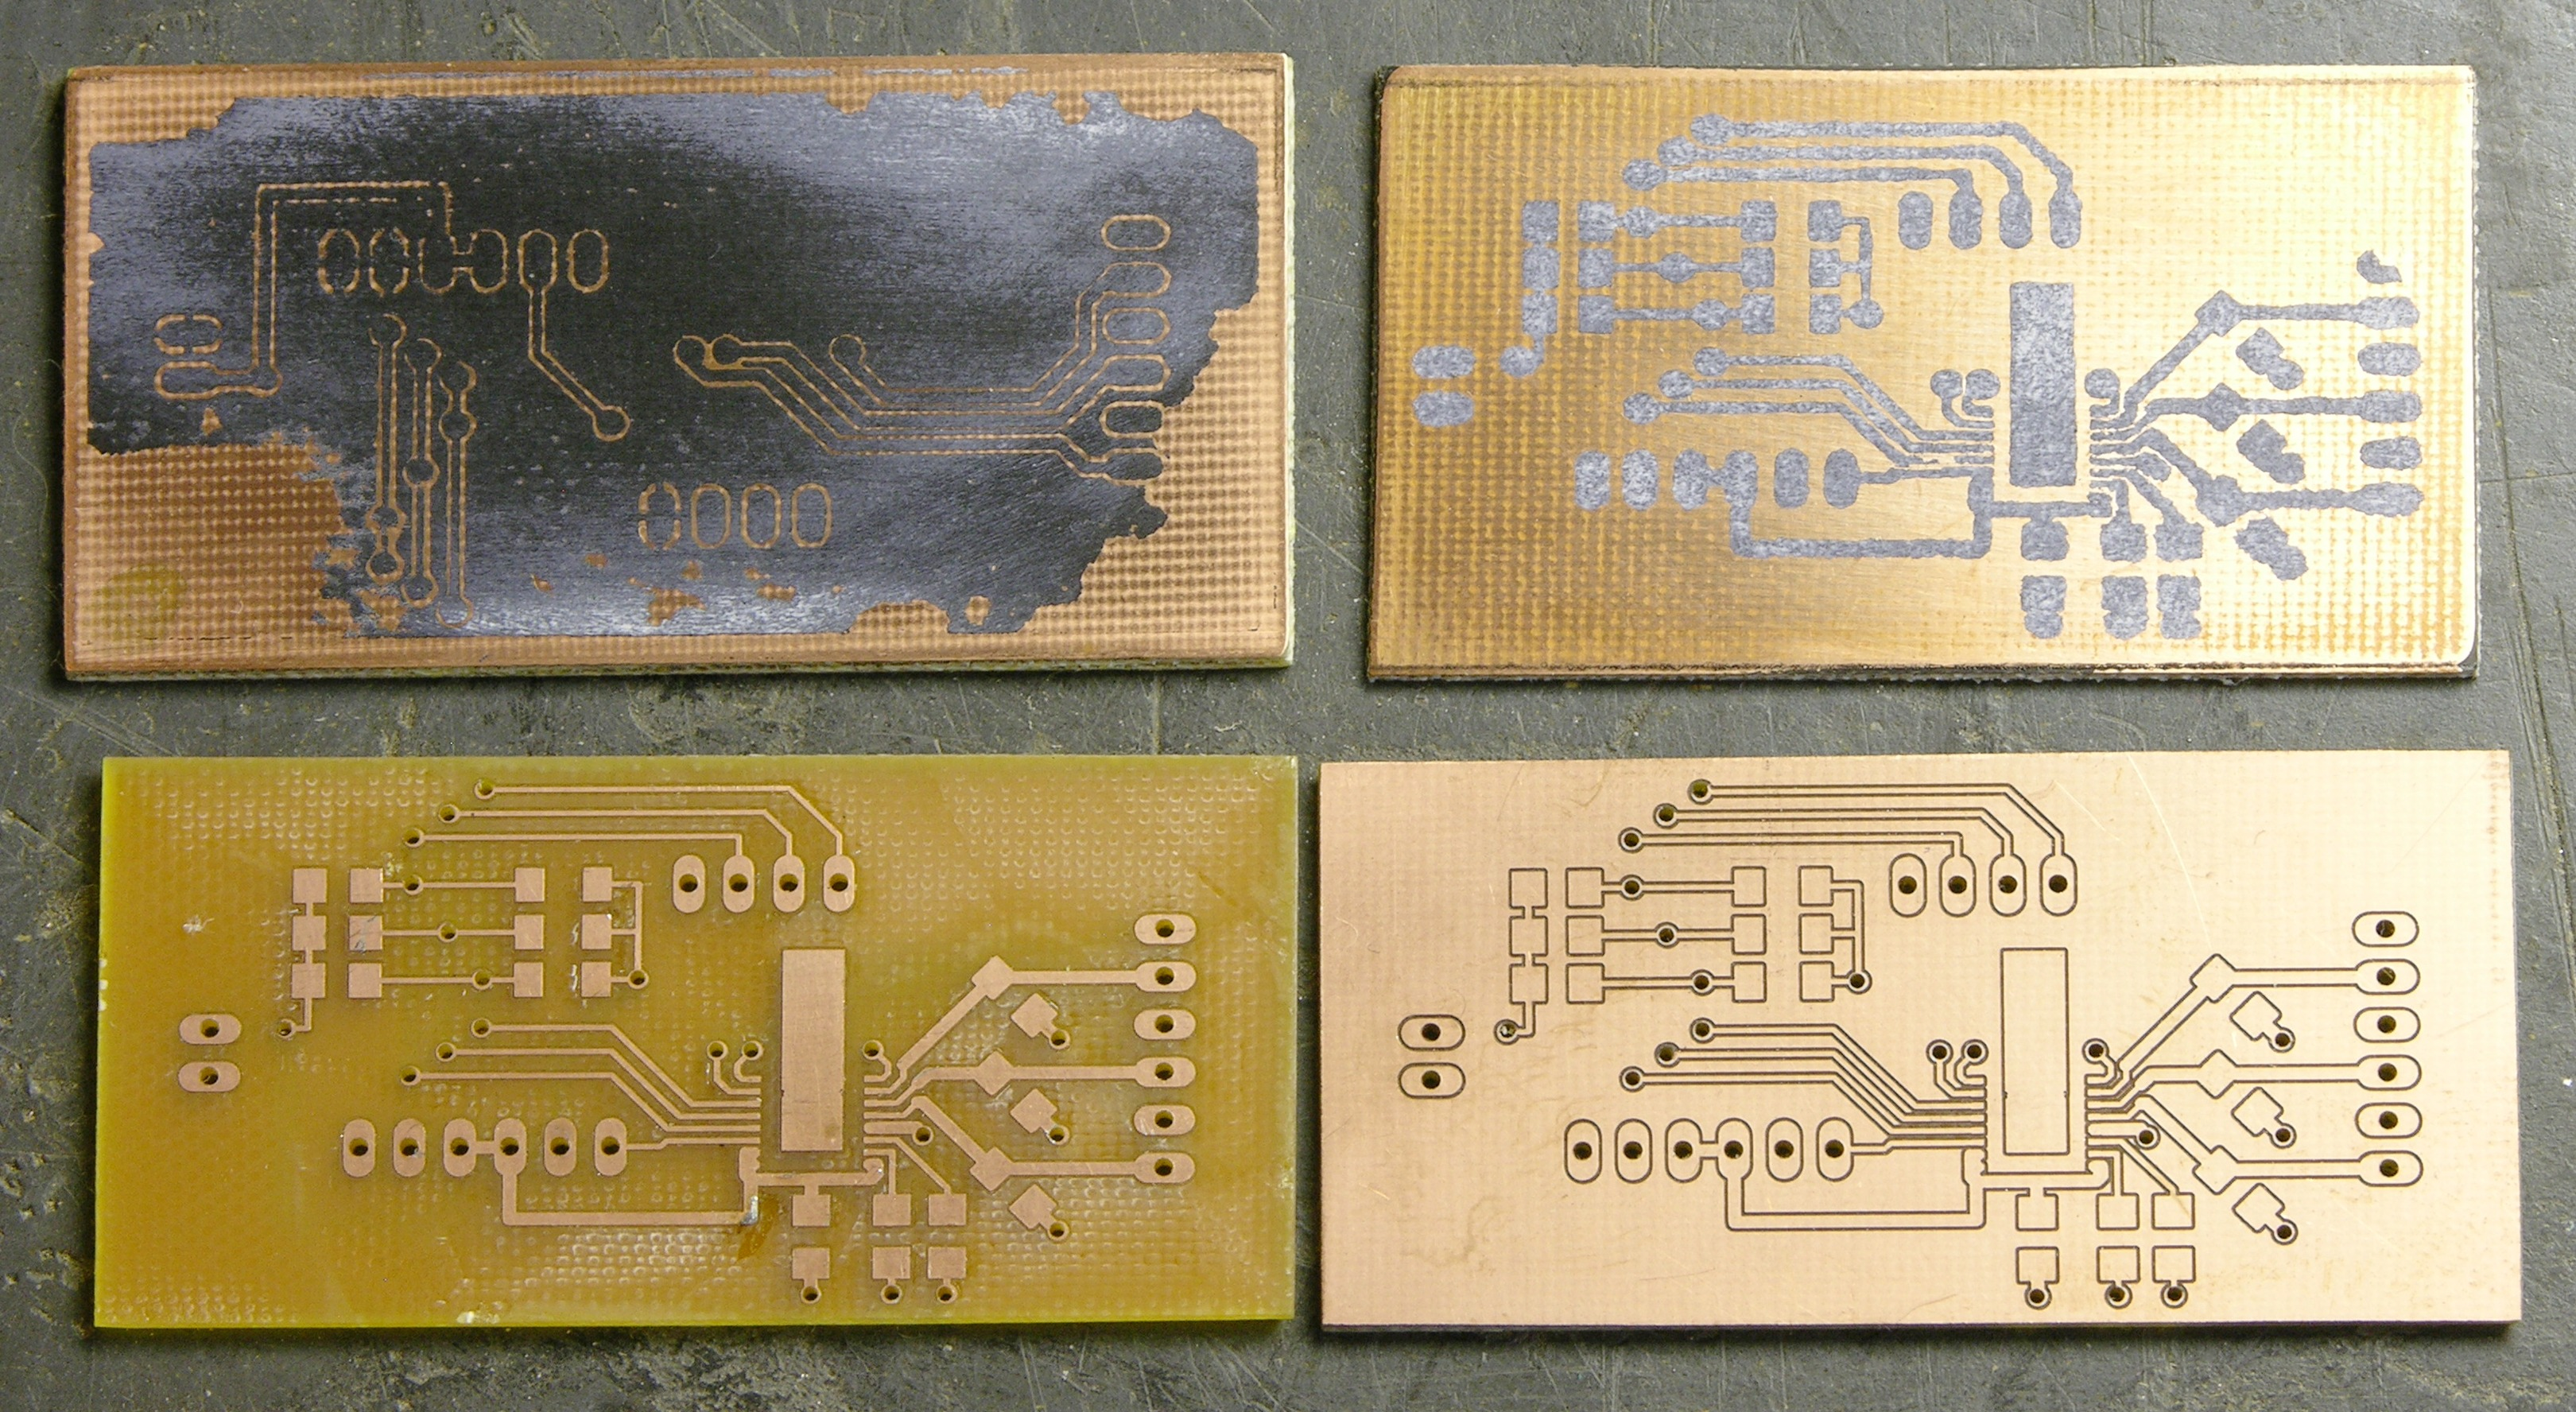 Circuits Keiths Electronics Blog Constant Current Drives Two 3 Watt Ledselectronics Project Circuts Circuit Boards Iron On Transfer Attempts Milled